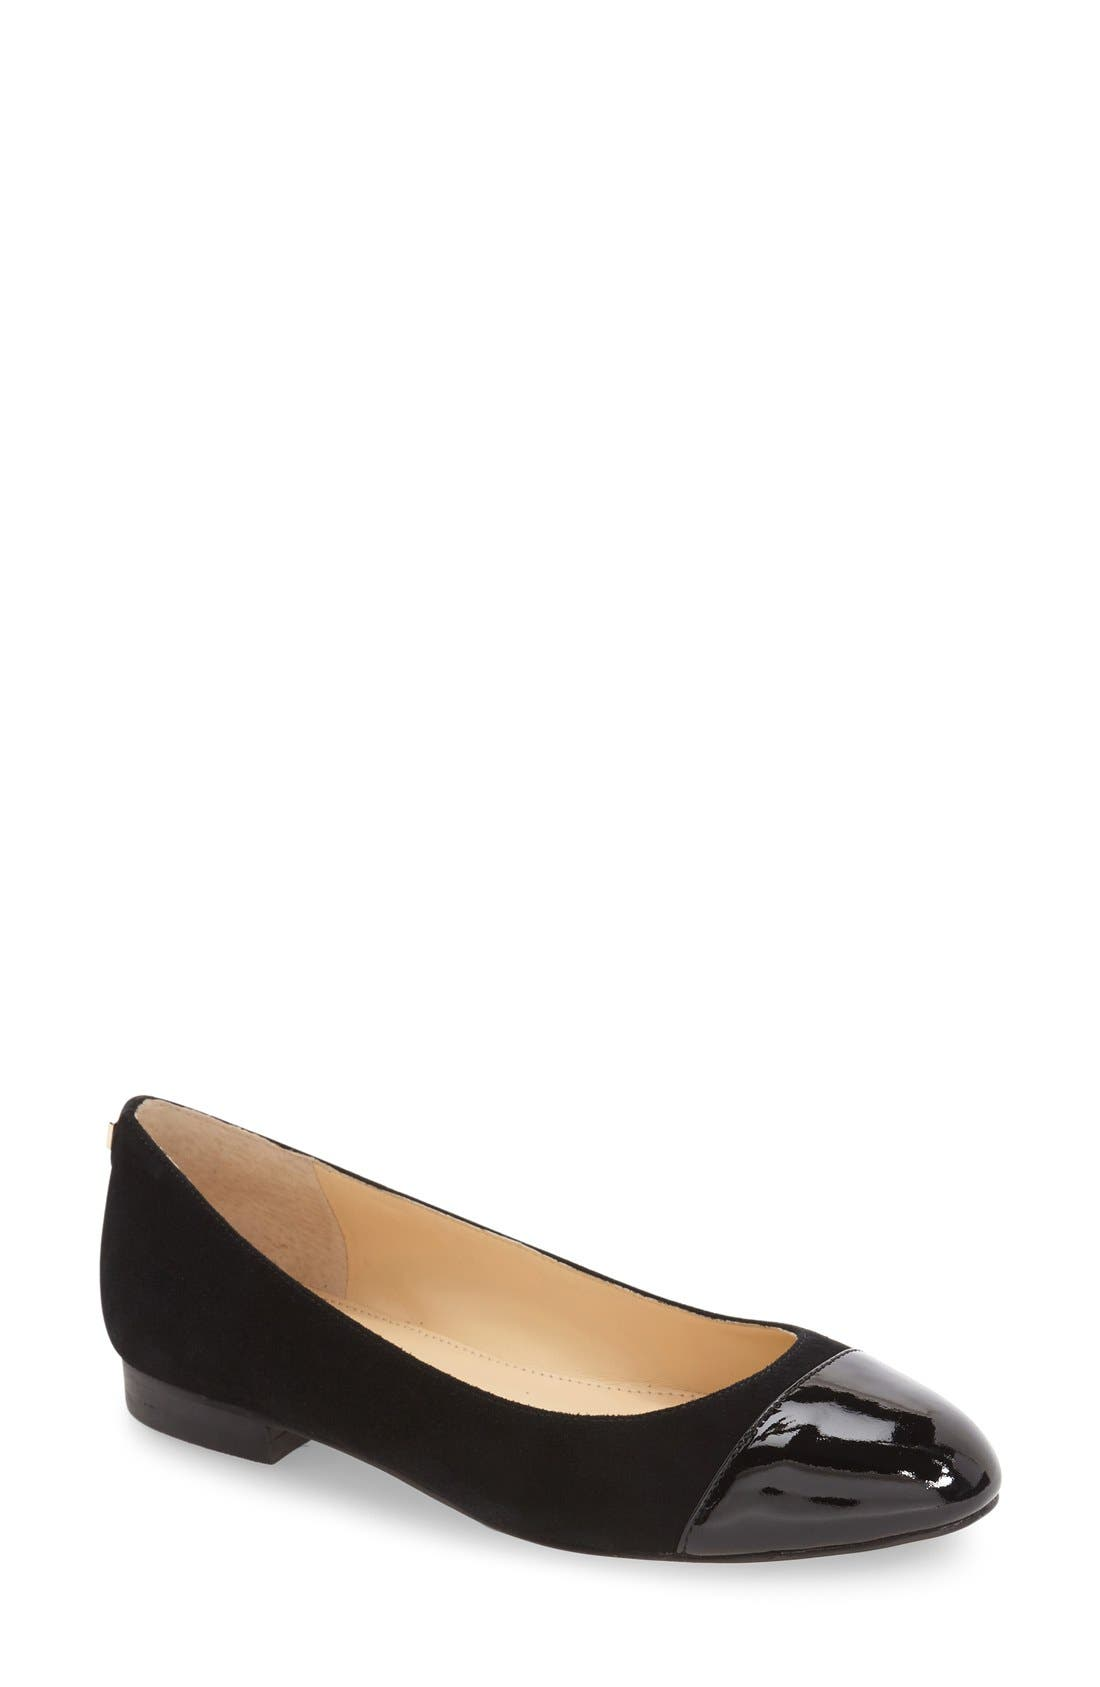 IVANKA TRUMP 'Jocelyn' Cap Toe Flat, Main, color, 001